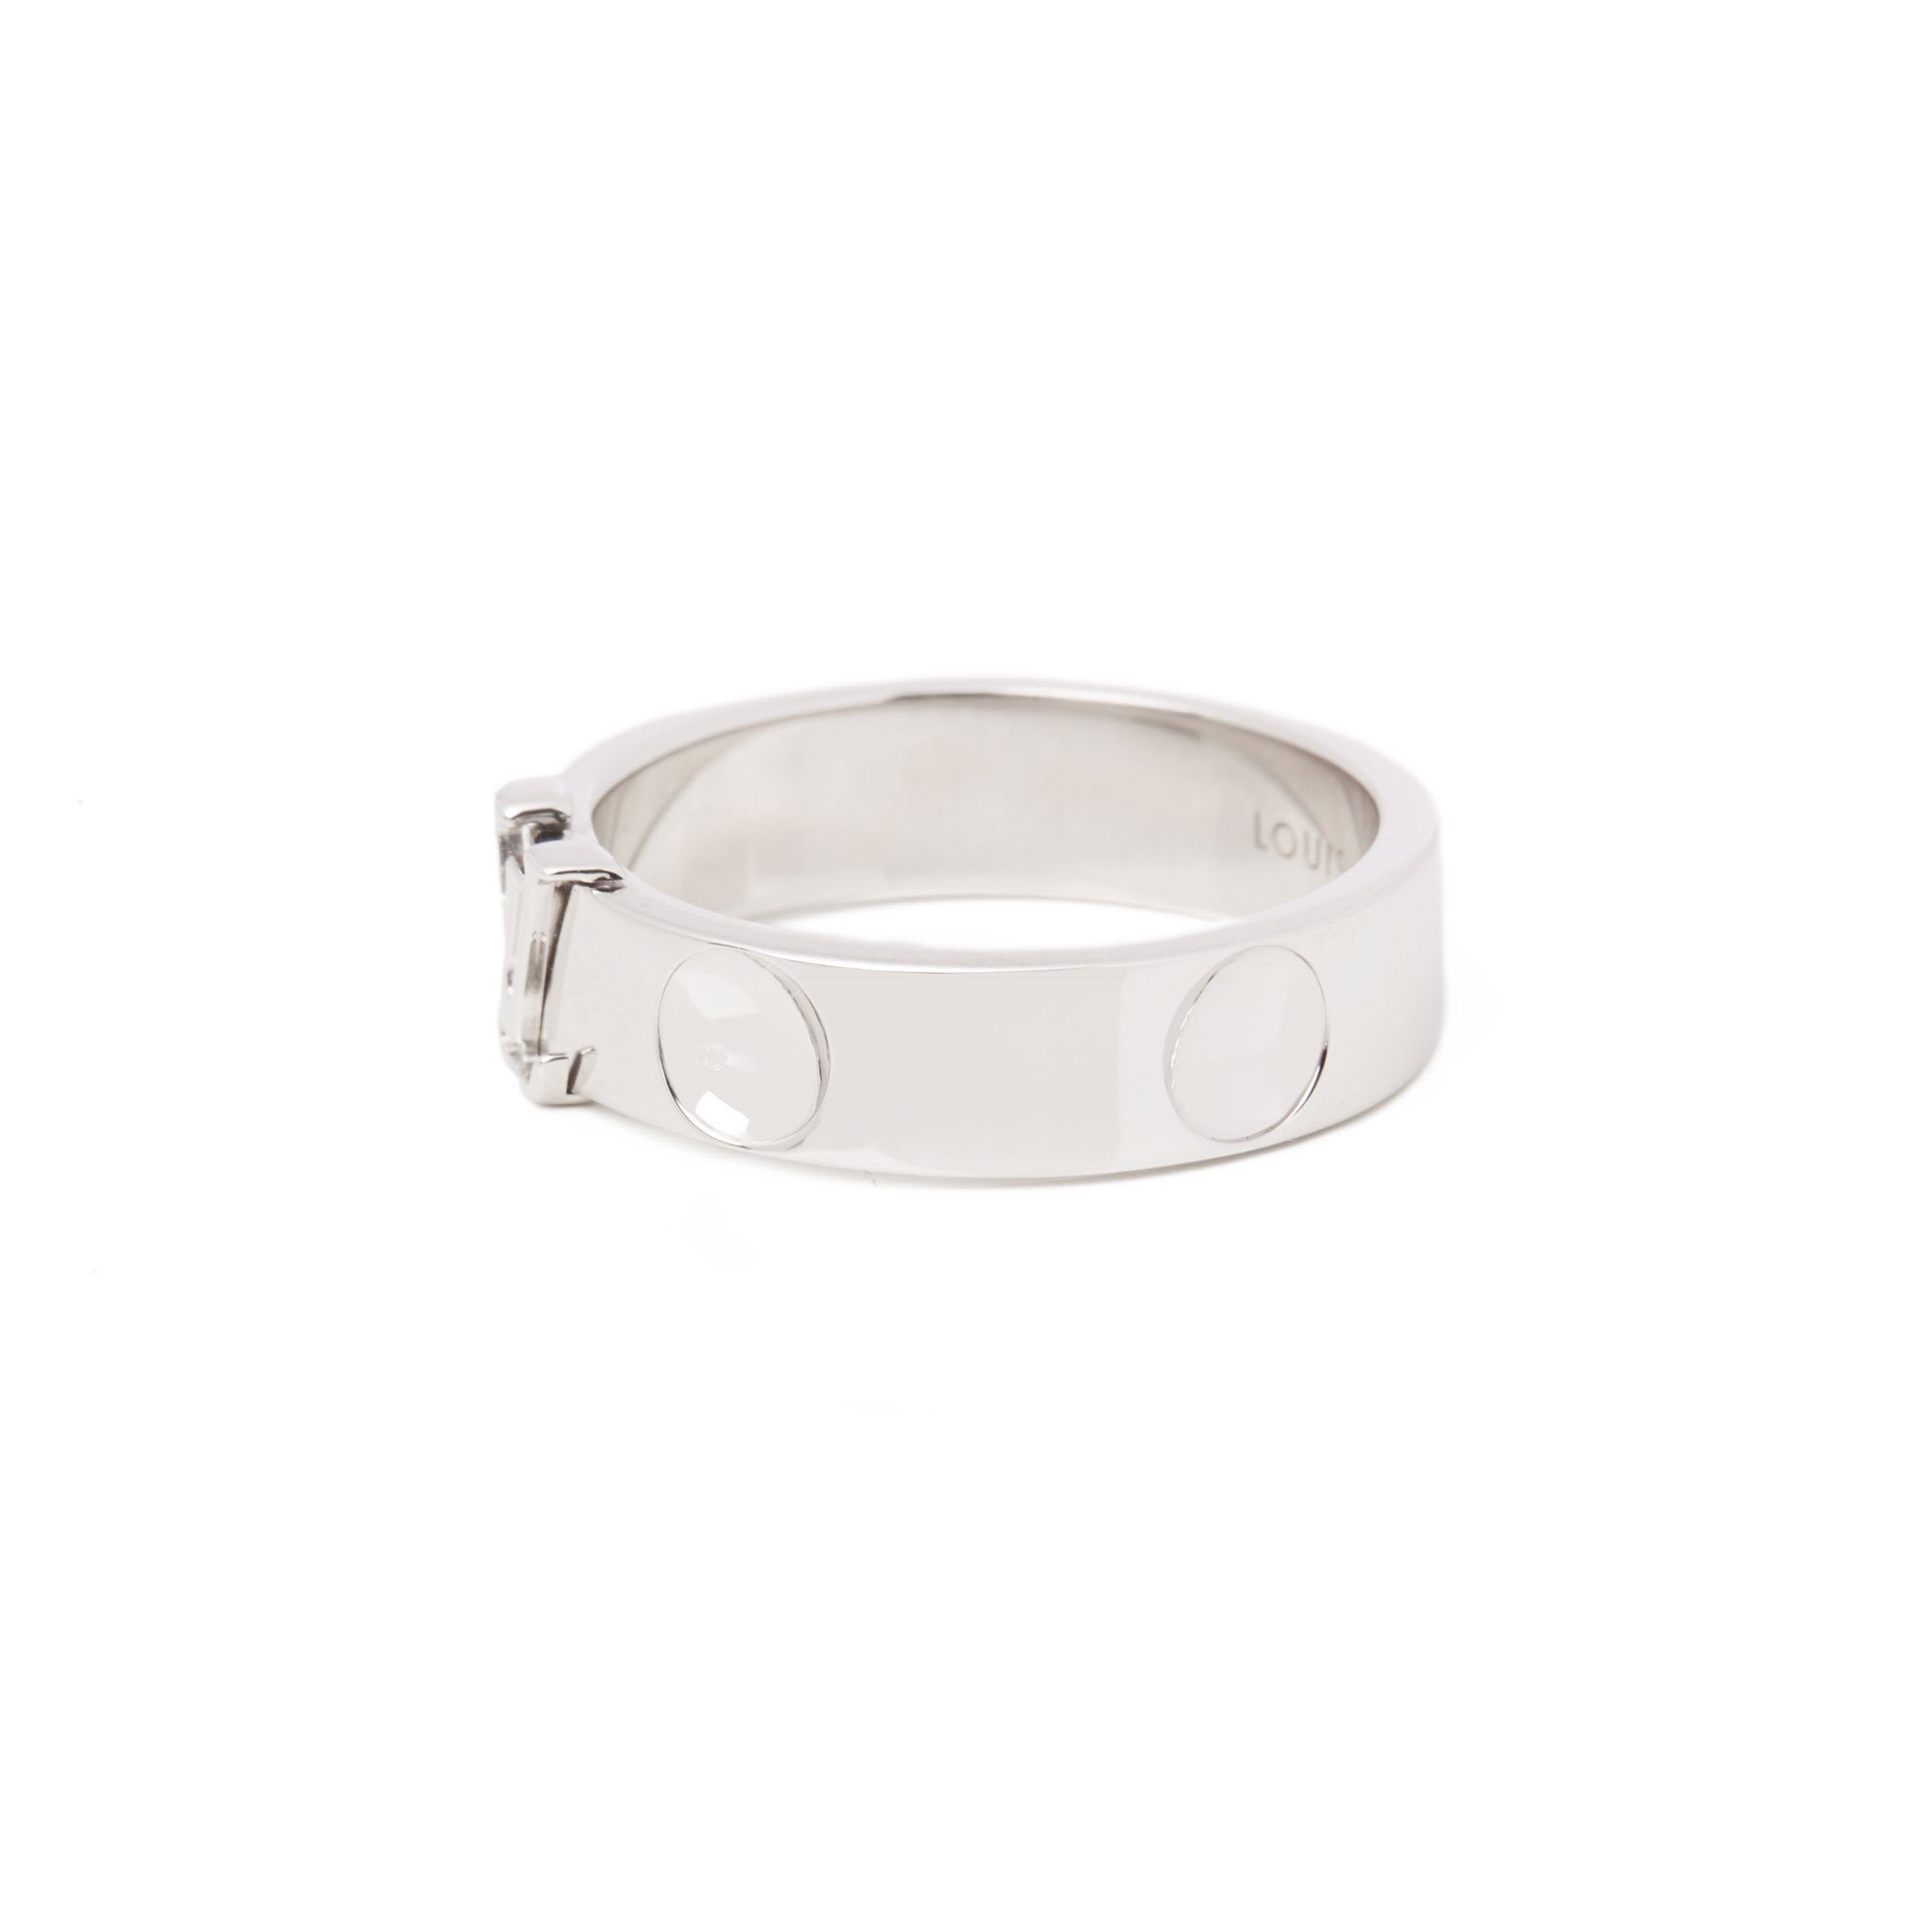 Louis Vuitton Empriente 18ct White Gold Band Ring